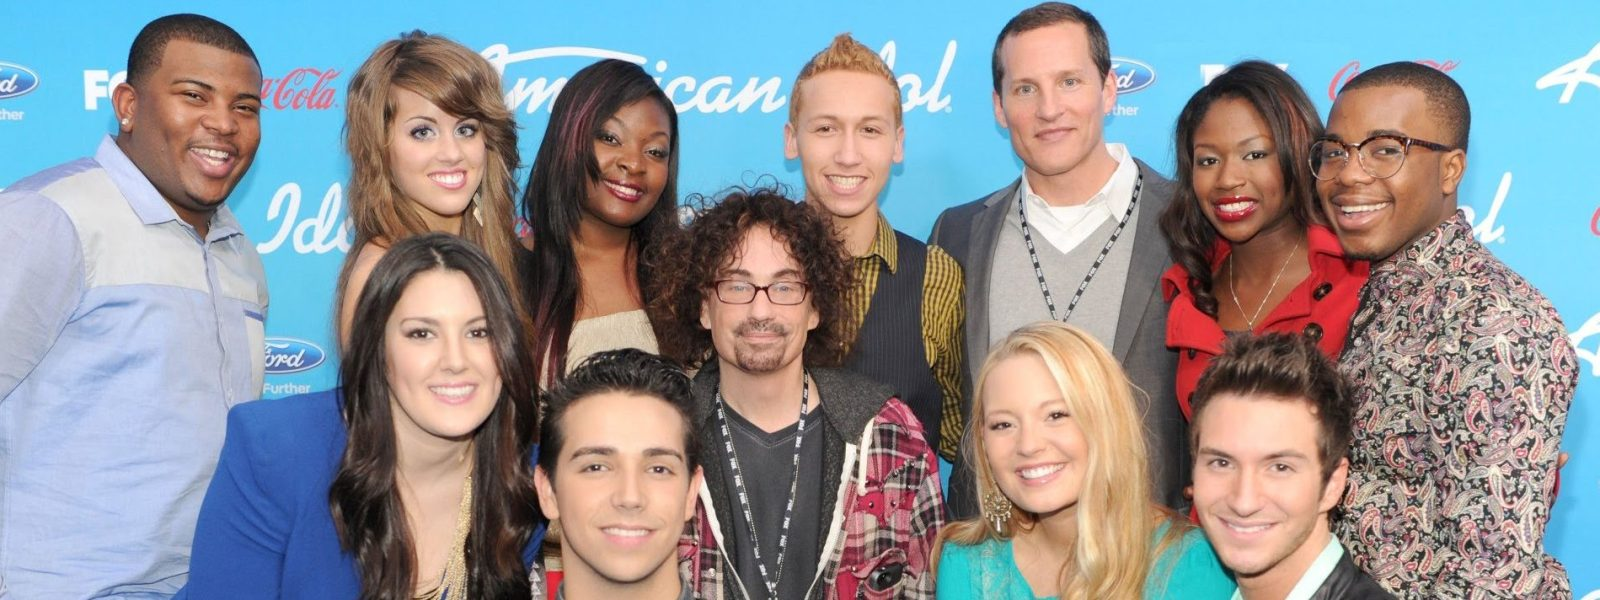 American Idol Season 12: What Just Happened?